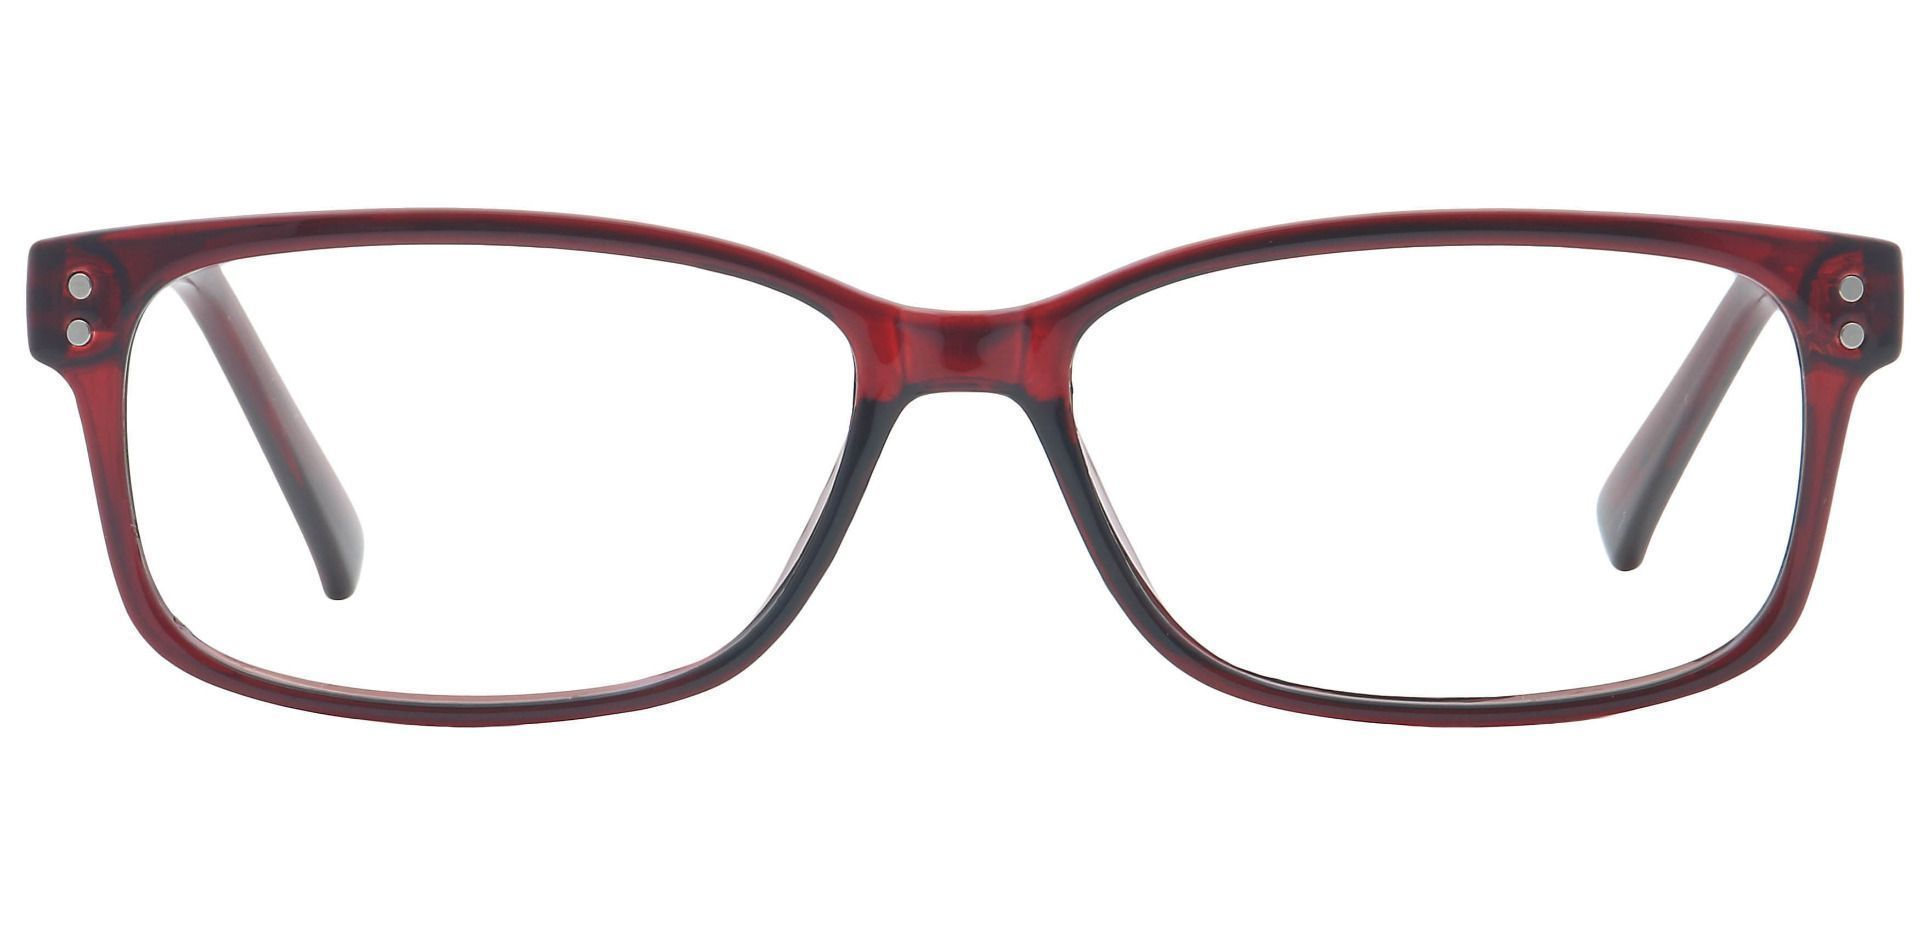 Krissy Oval Lined Bifocal Glasses - Wine